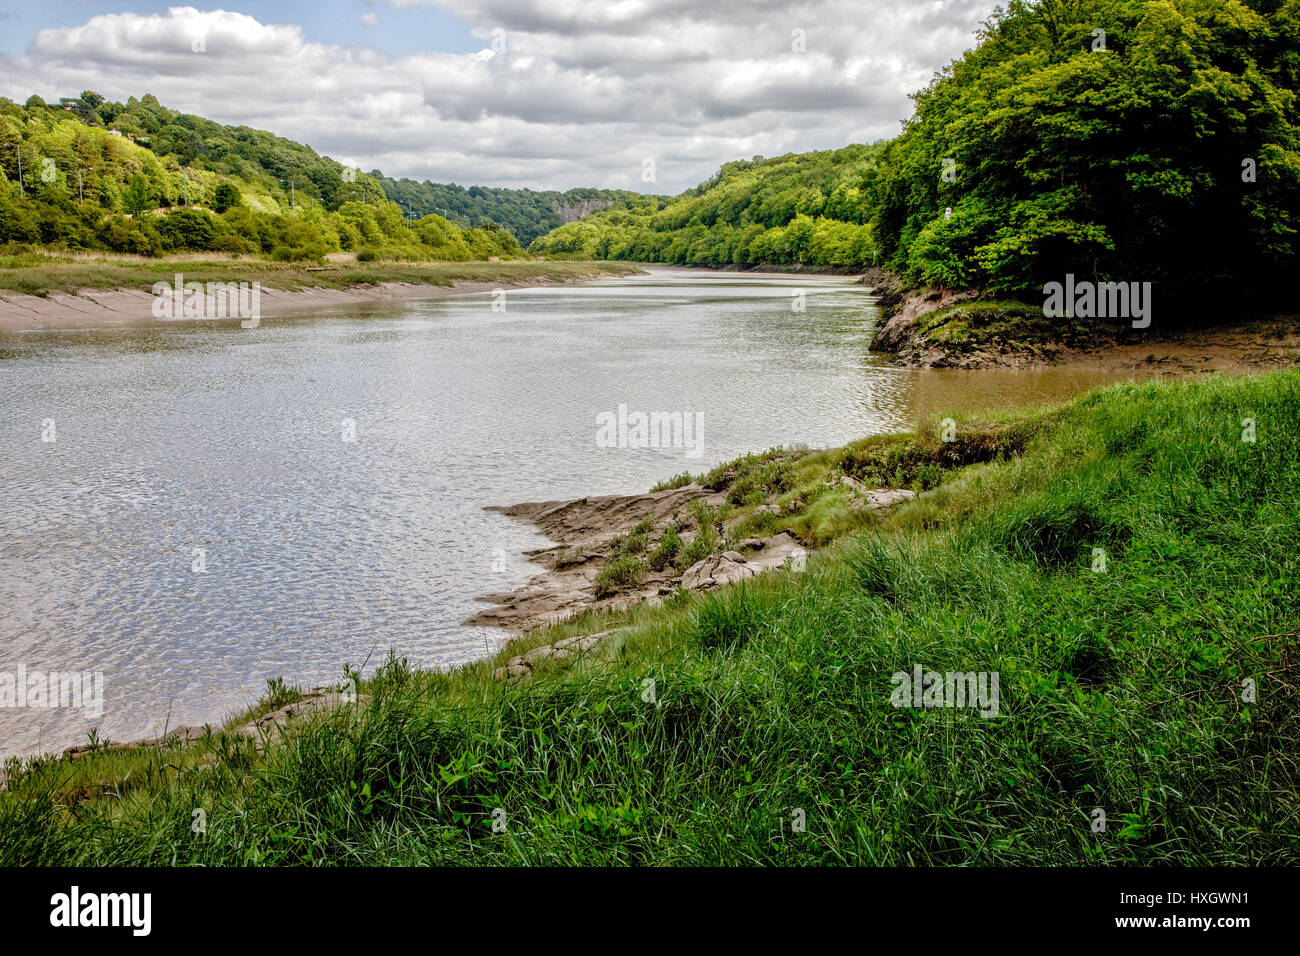 The River Avon and the entrance to the Avon Gorge near Sea Mills from Paradise Bottom at high tide - Bristol UK - Stock Image